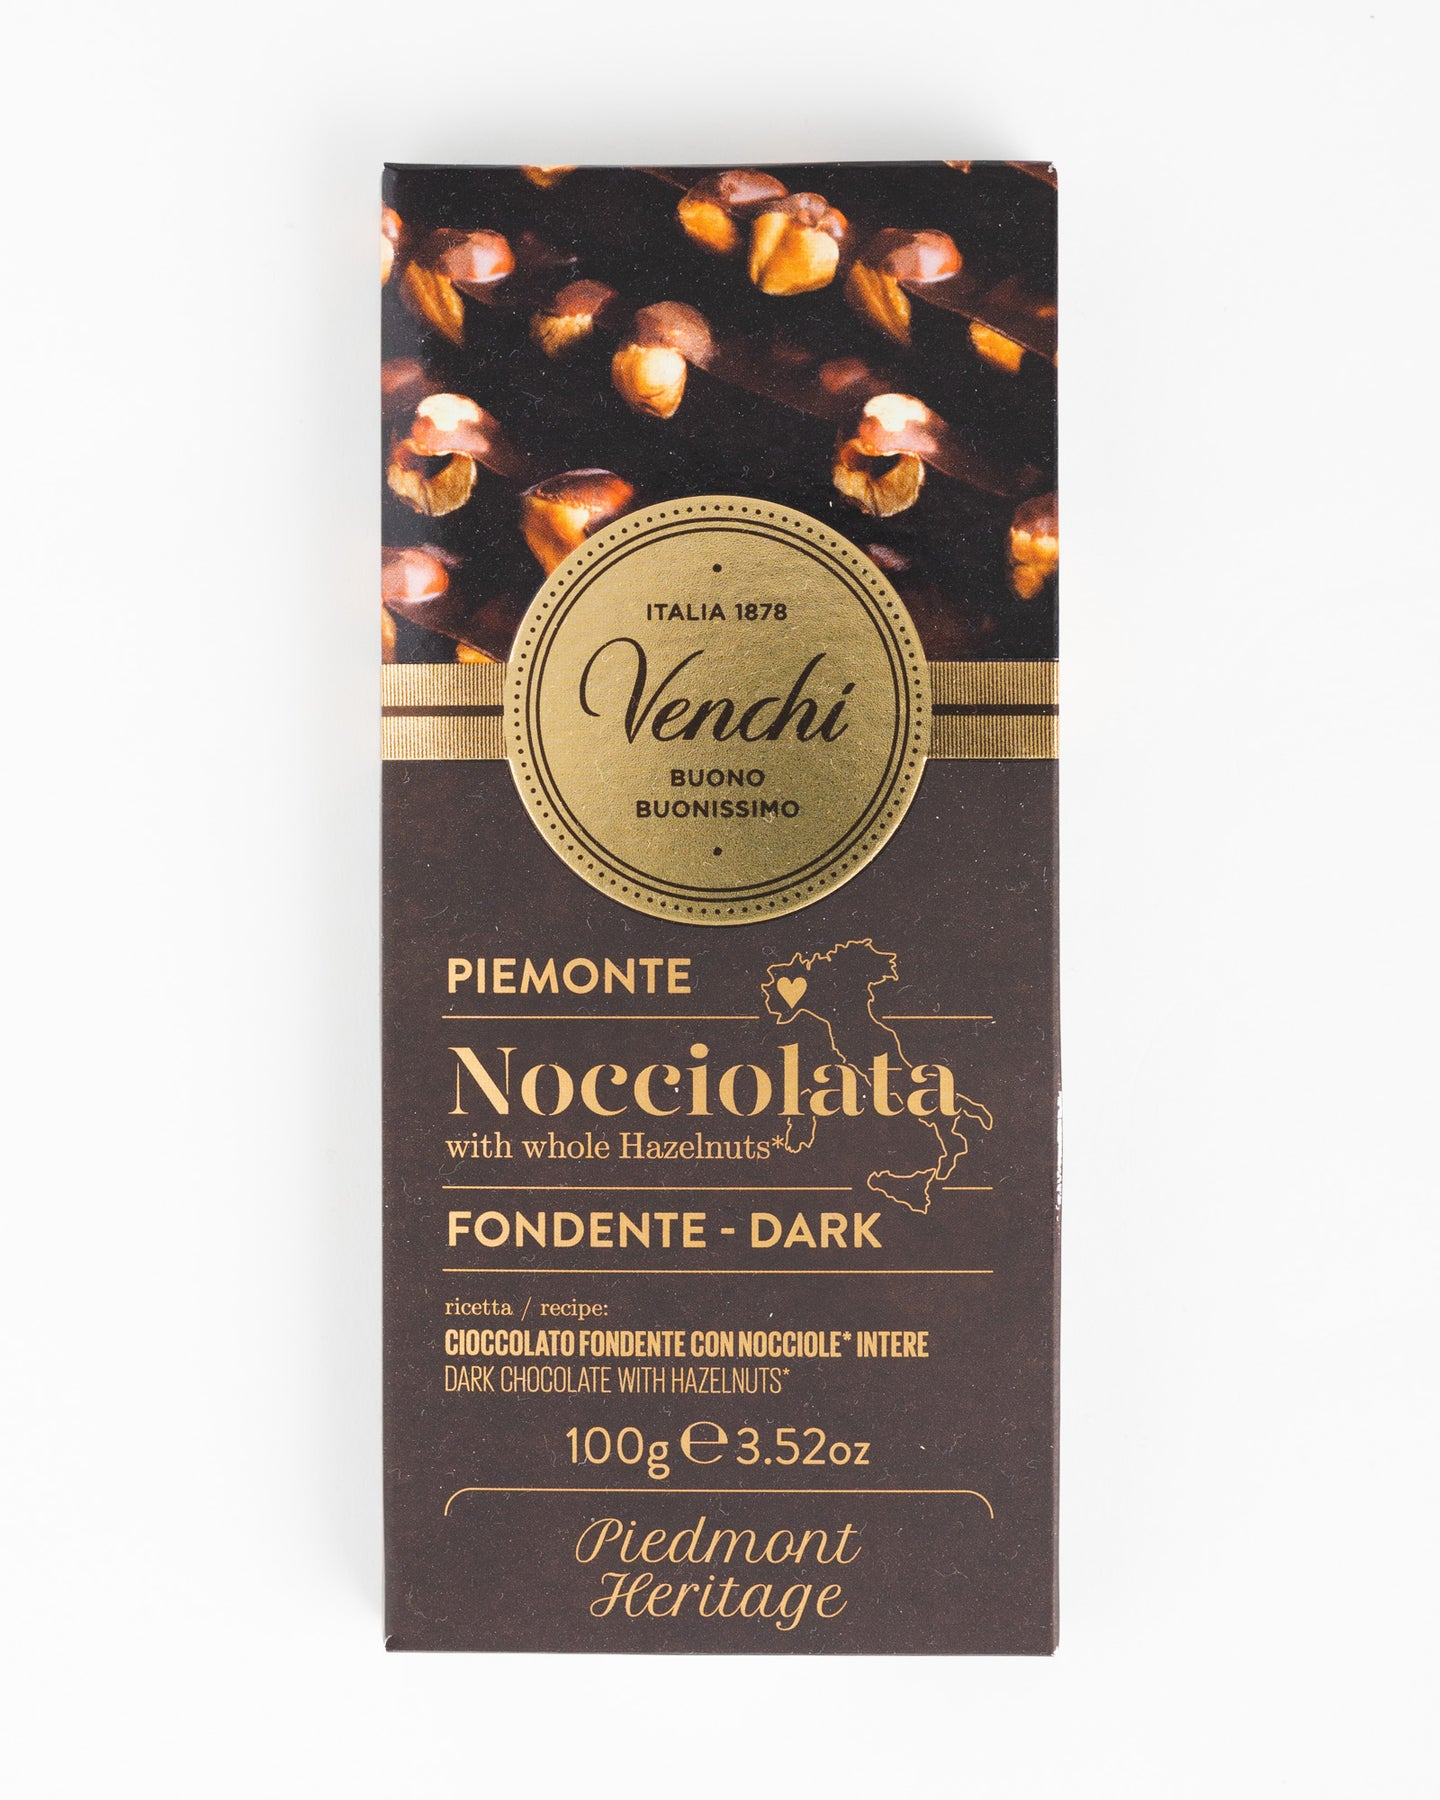 Venchi - Piemonte Nocciolata with whole Hazelnuts